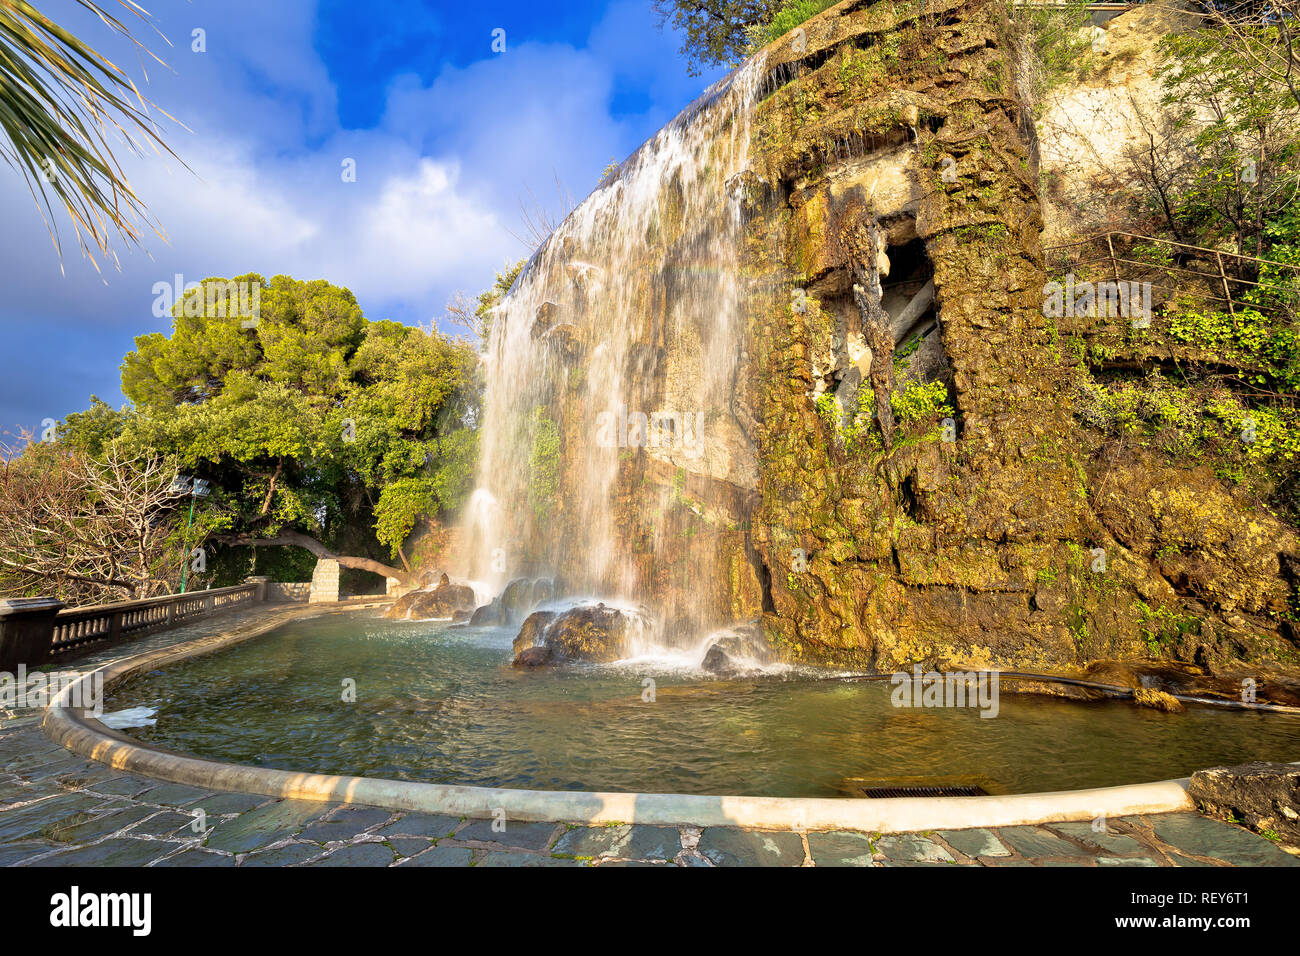 The waterfall Cascade Du Casteu at the park in Nice, tourist landmark of French riviera, Alpes Maritimes department of France Stock Photo